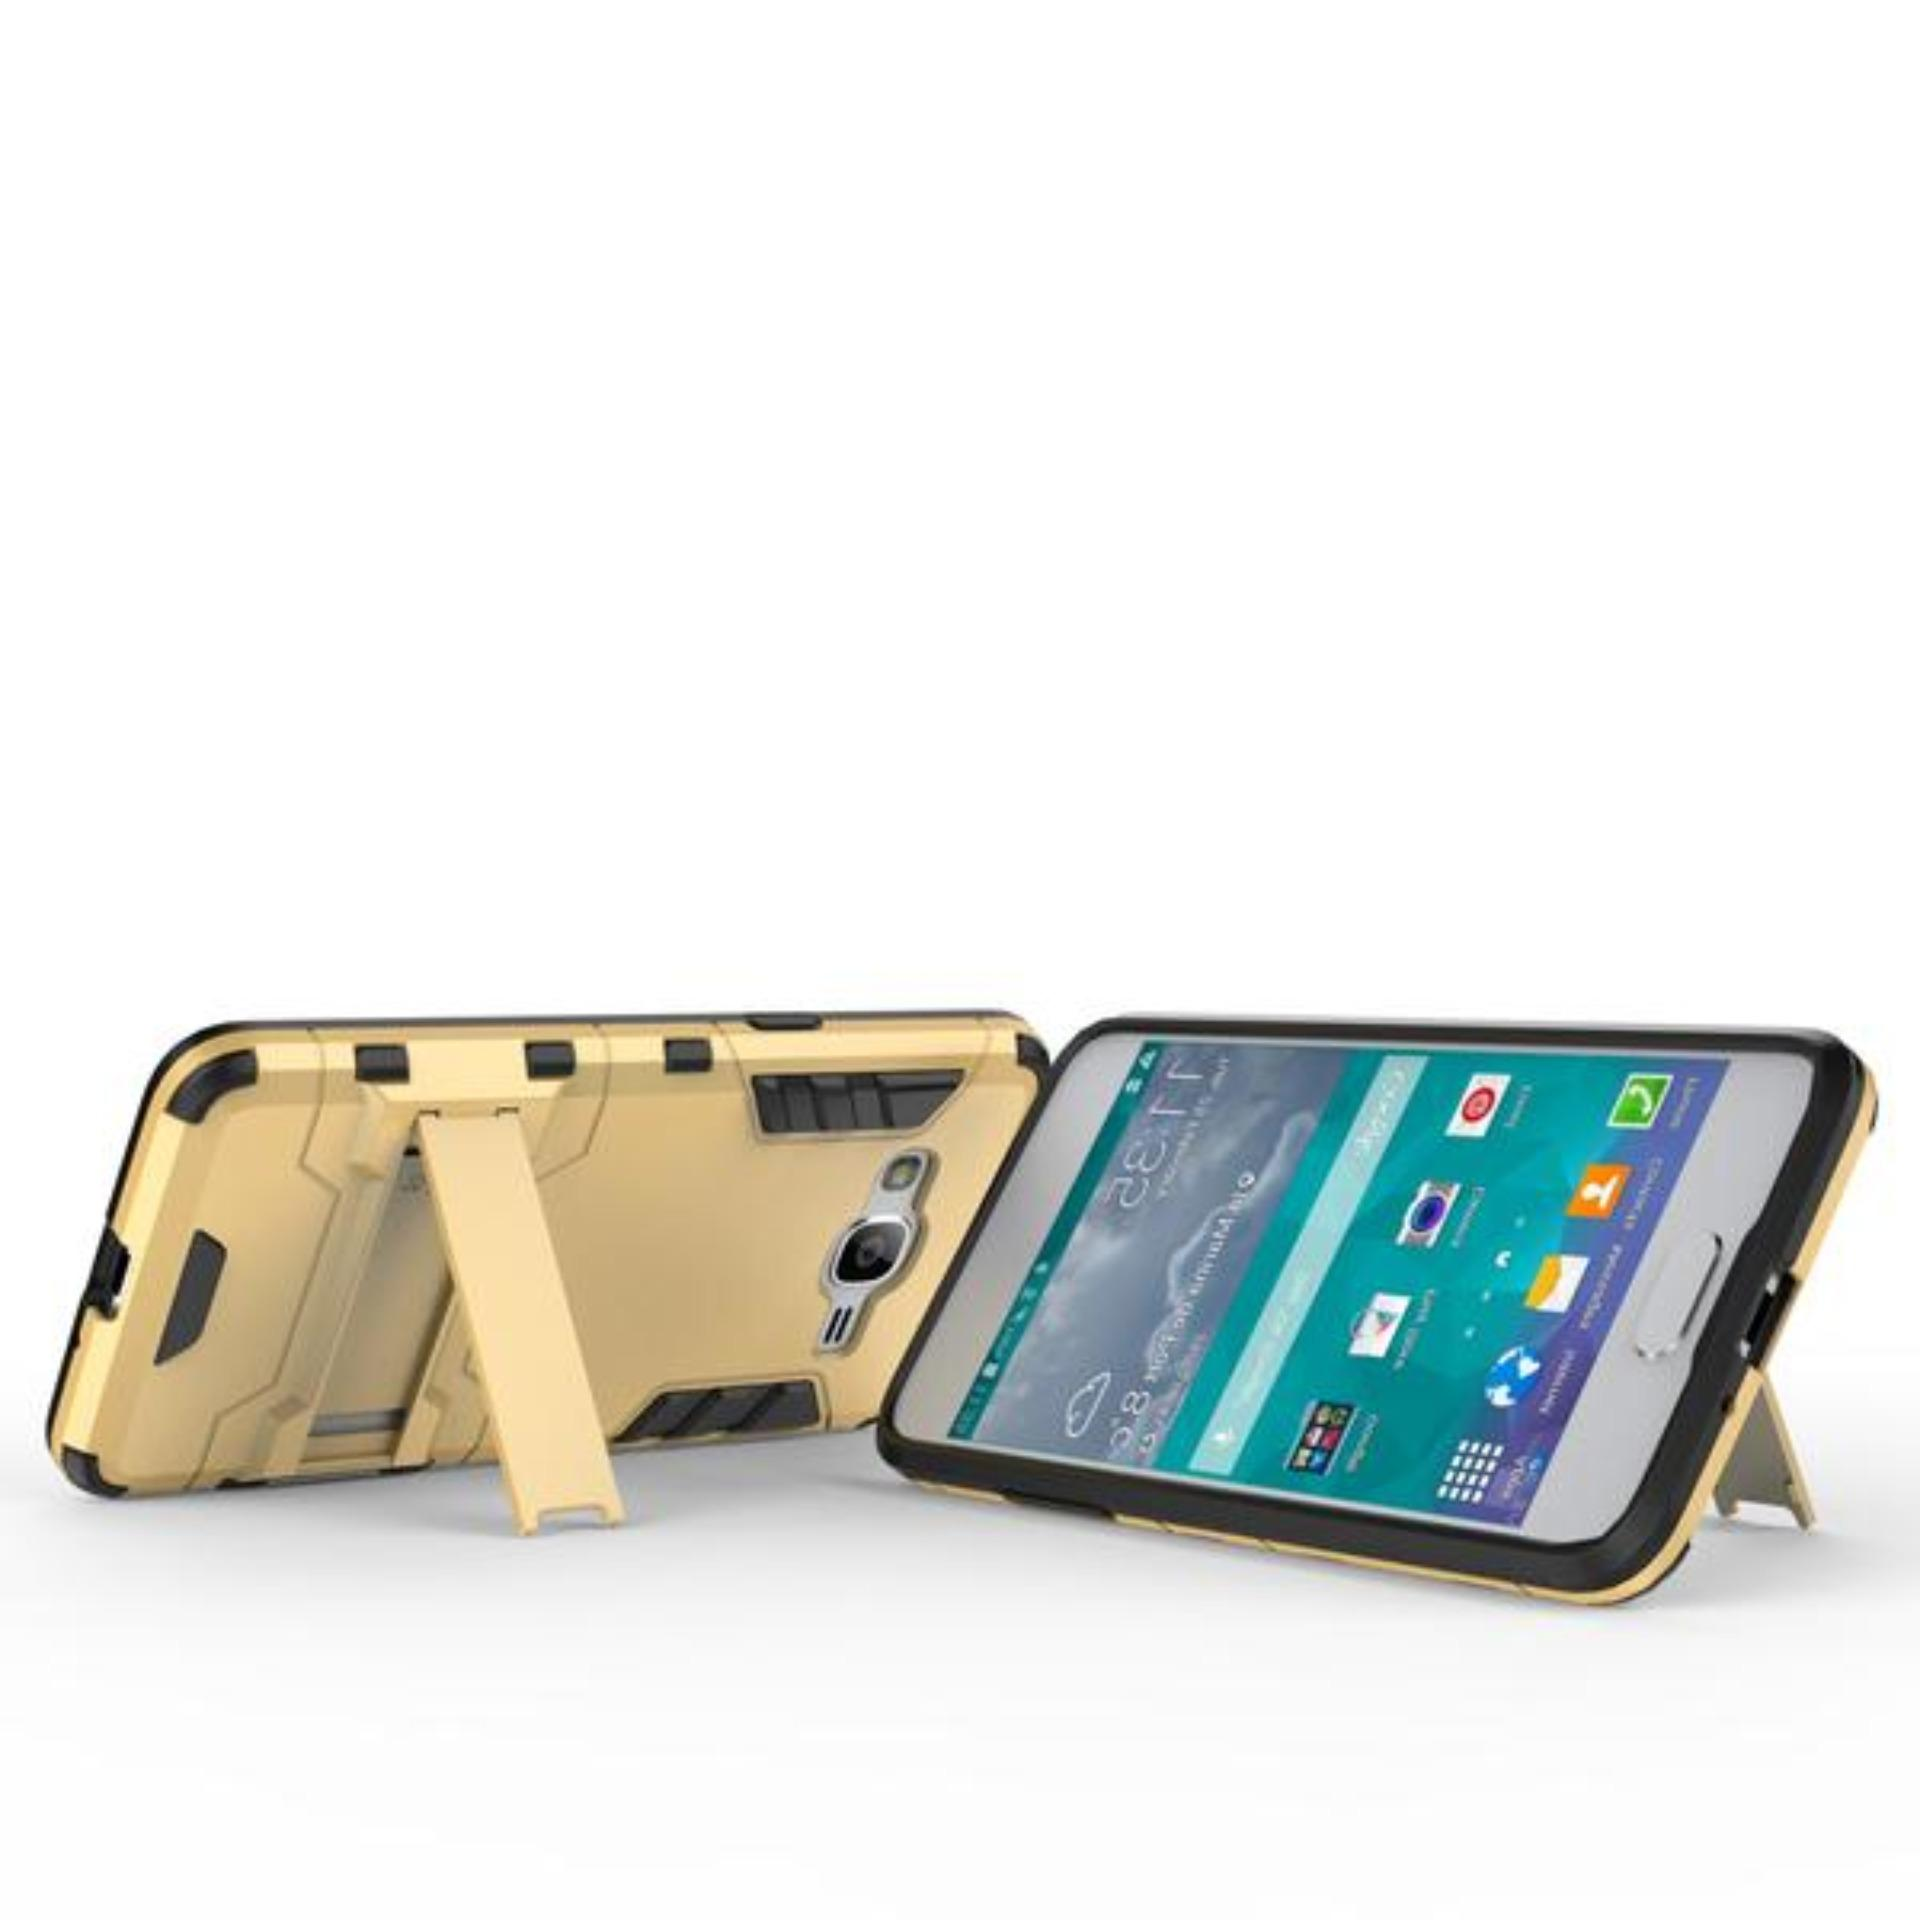 ... CASE EXECUTIVE IRON MAN 2 IN 1 ROBOT WITH STAND FOR SAMSUNG GALAXY J2 PRIME -